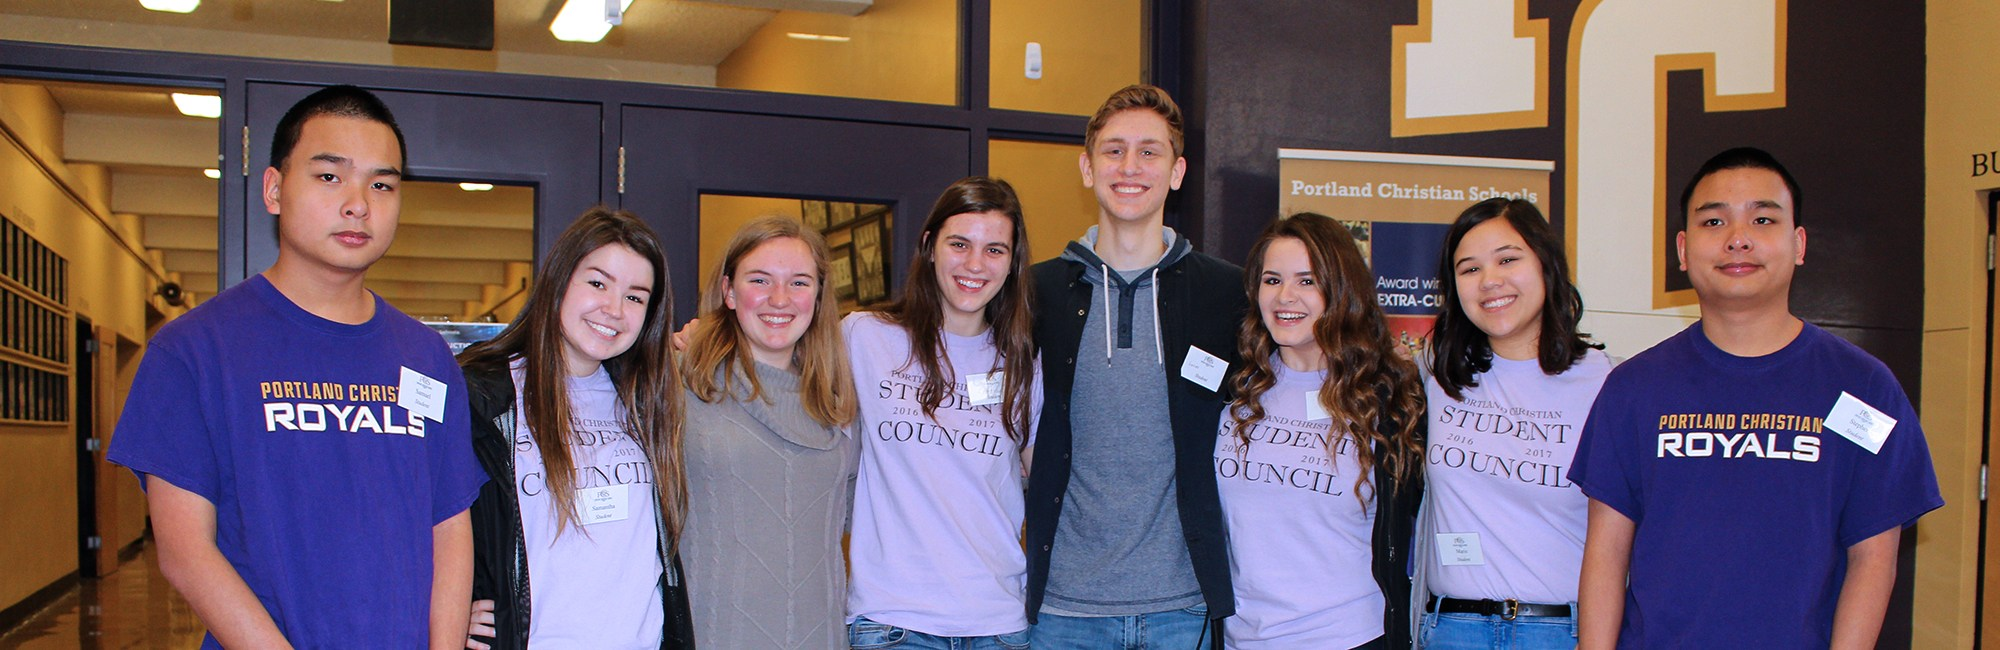 Students from Student Council and Honor Society at Open House event